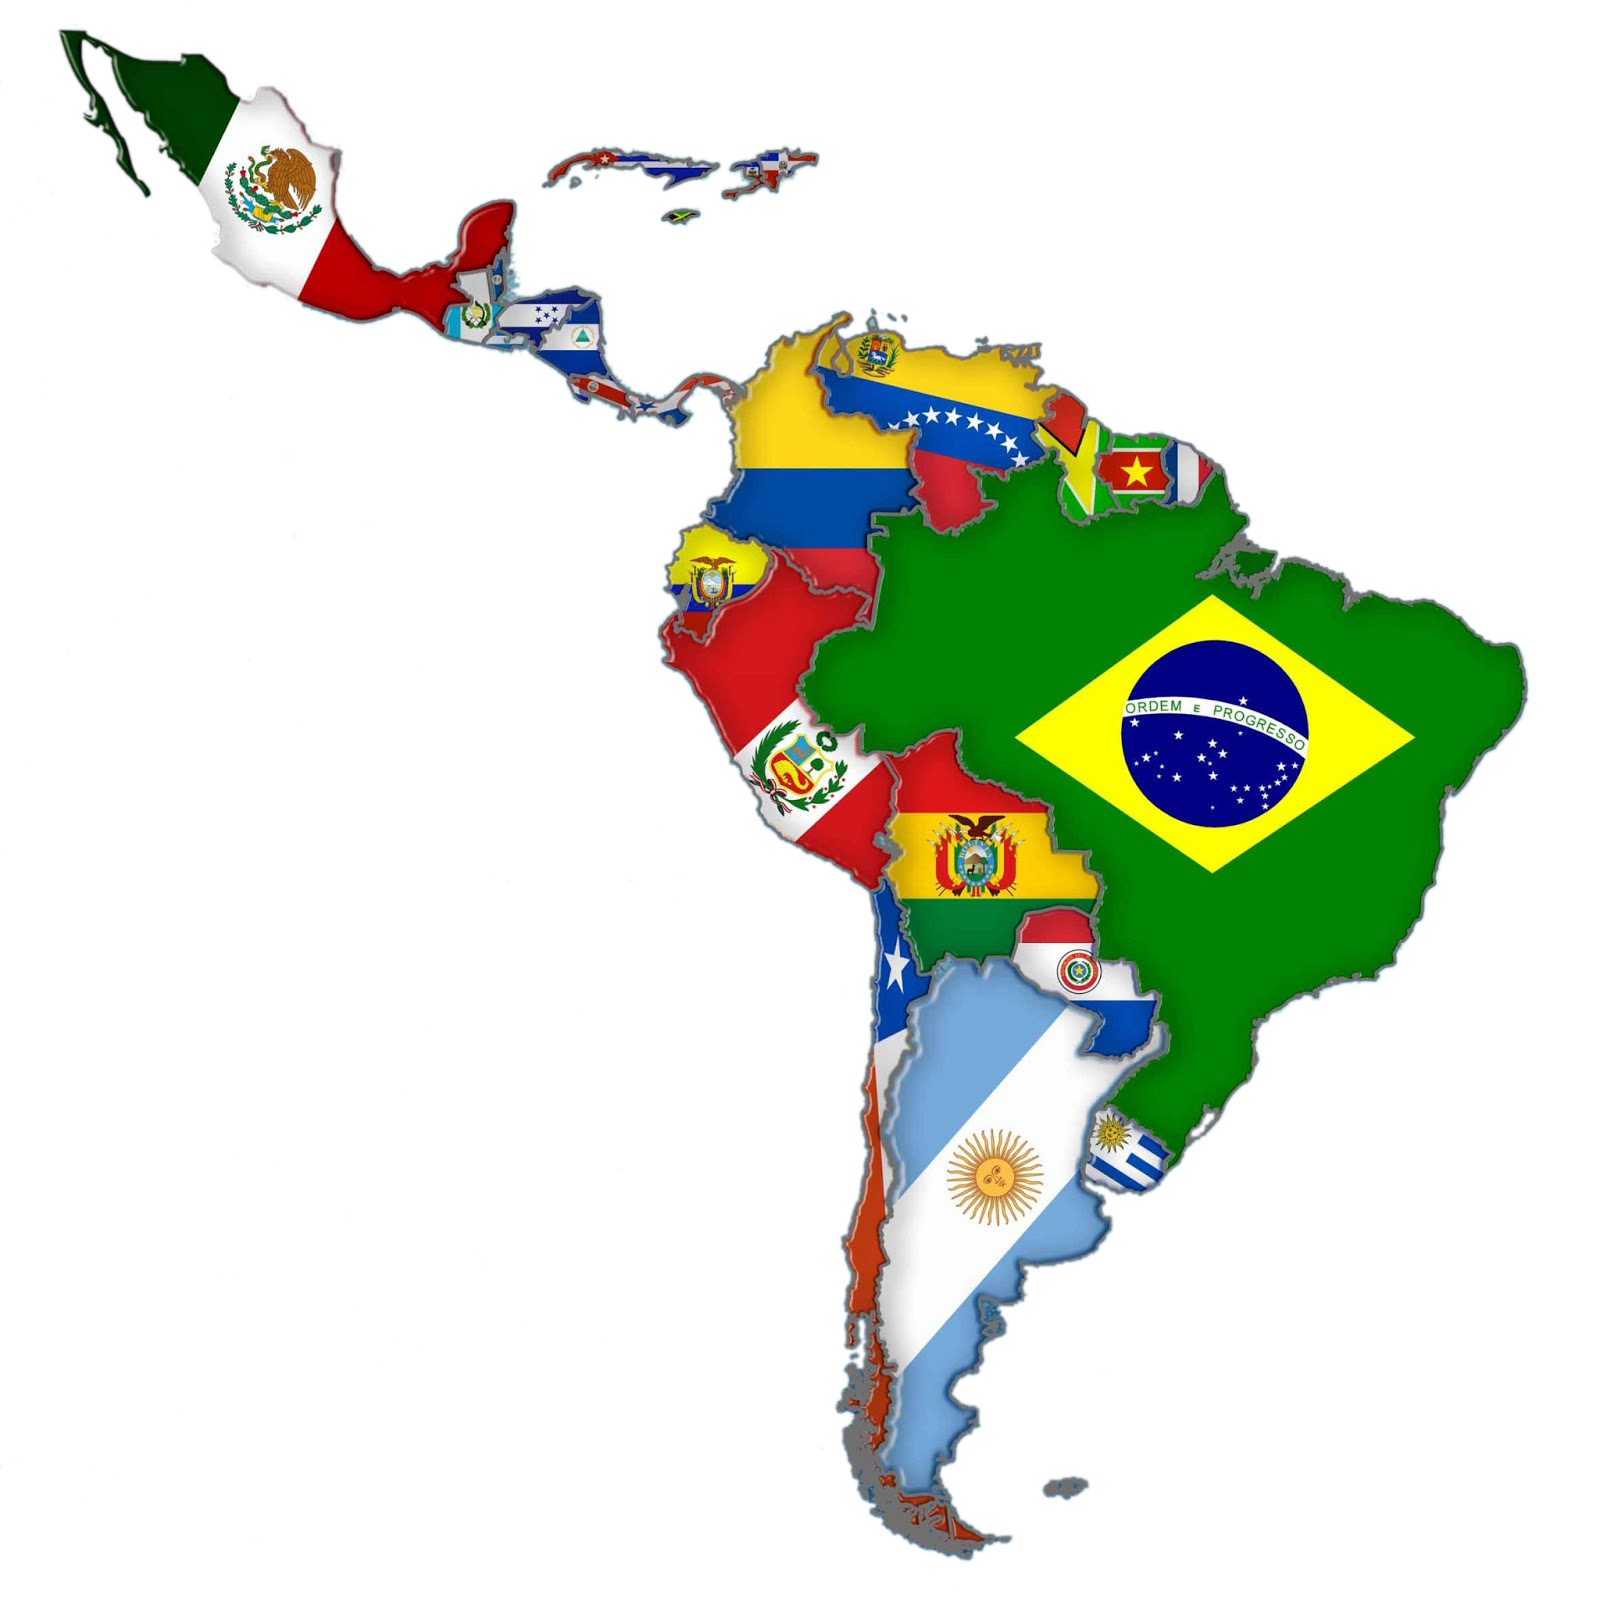 an informative paper about latin america Please update your billing details here to continue enjoying your access to the most informative and considered journalism in the uk.